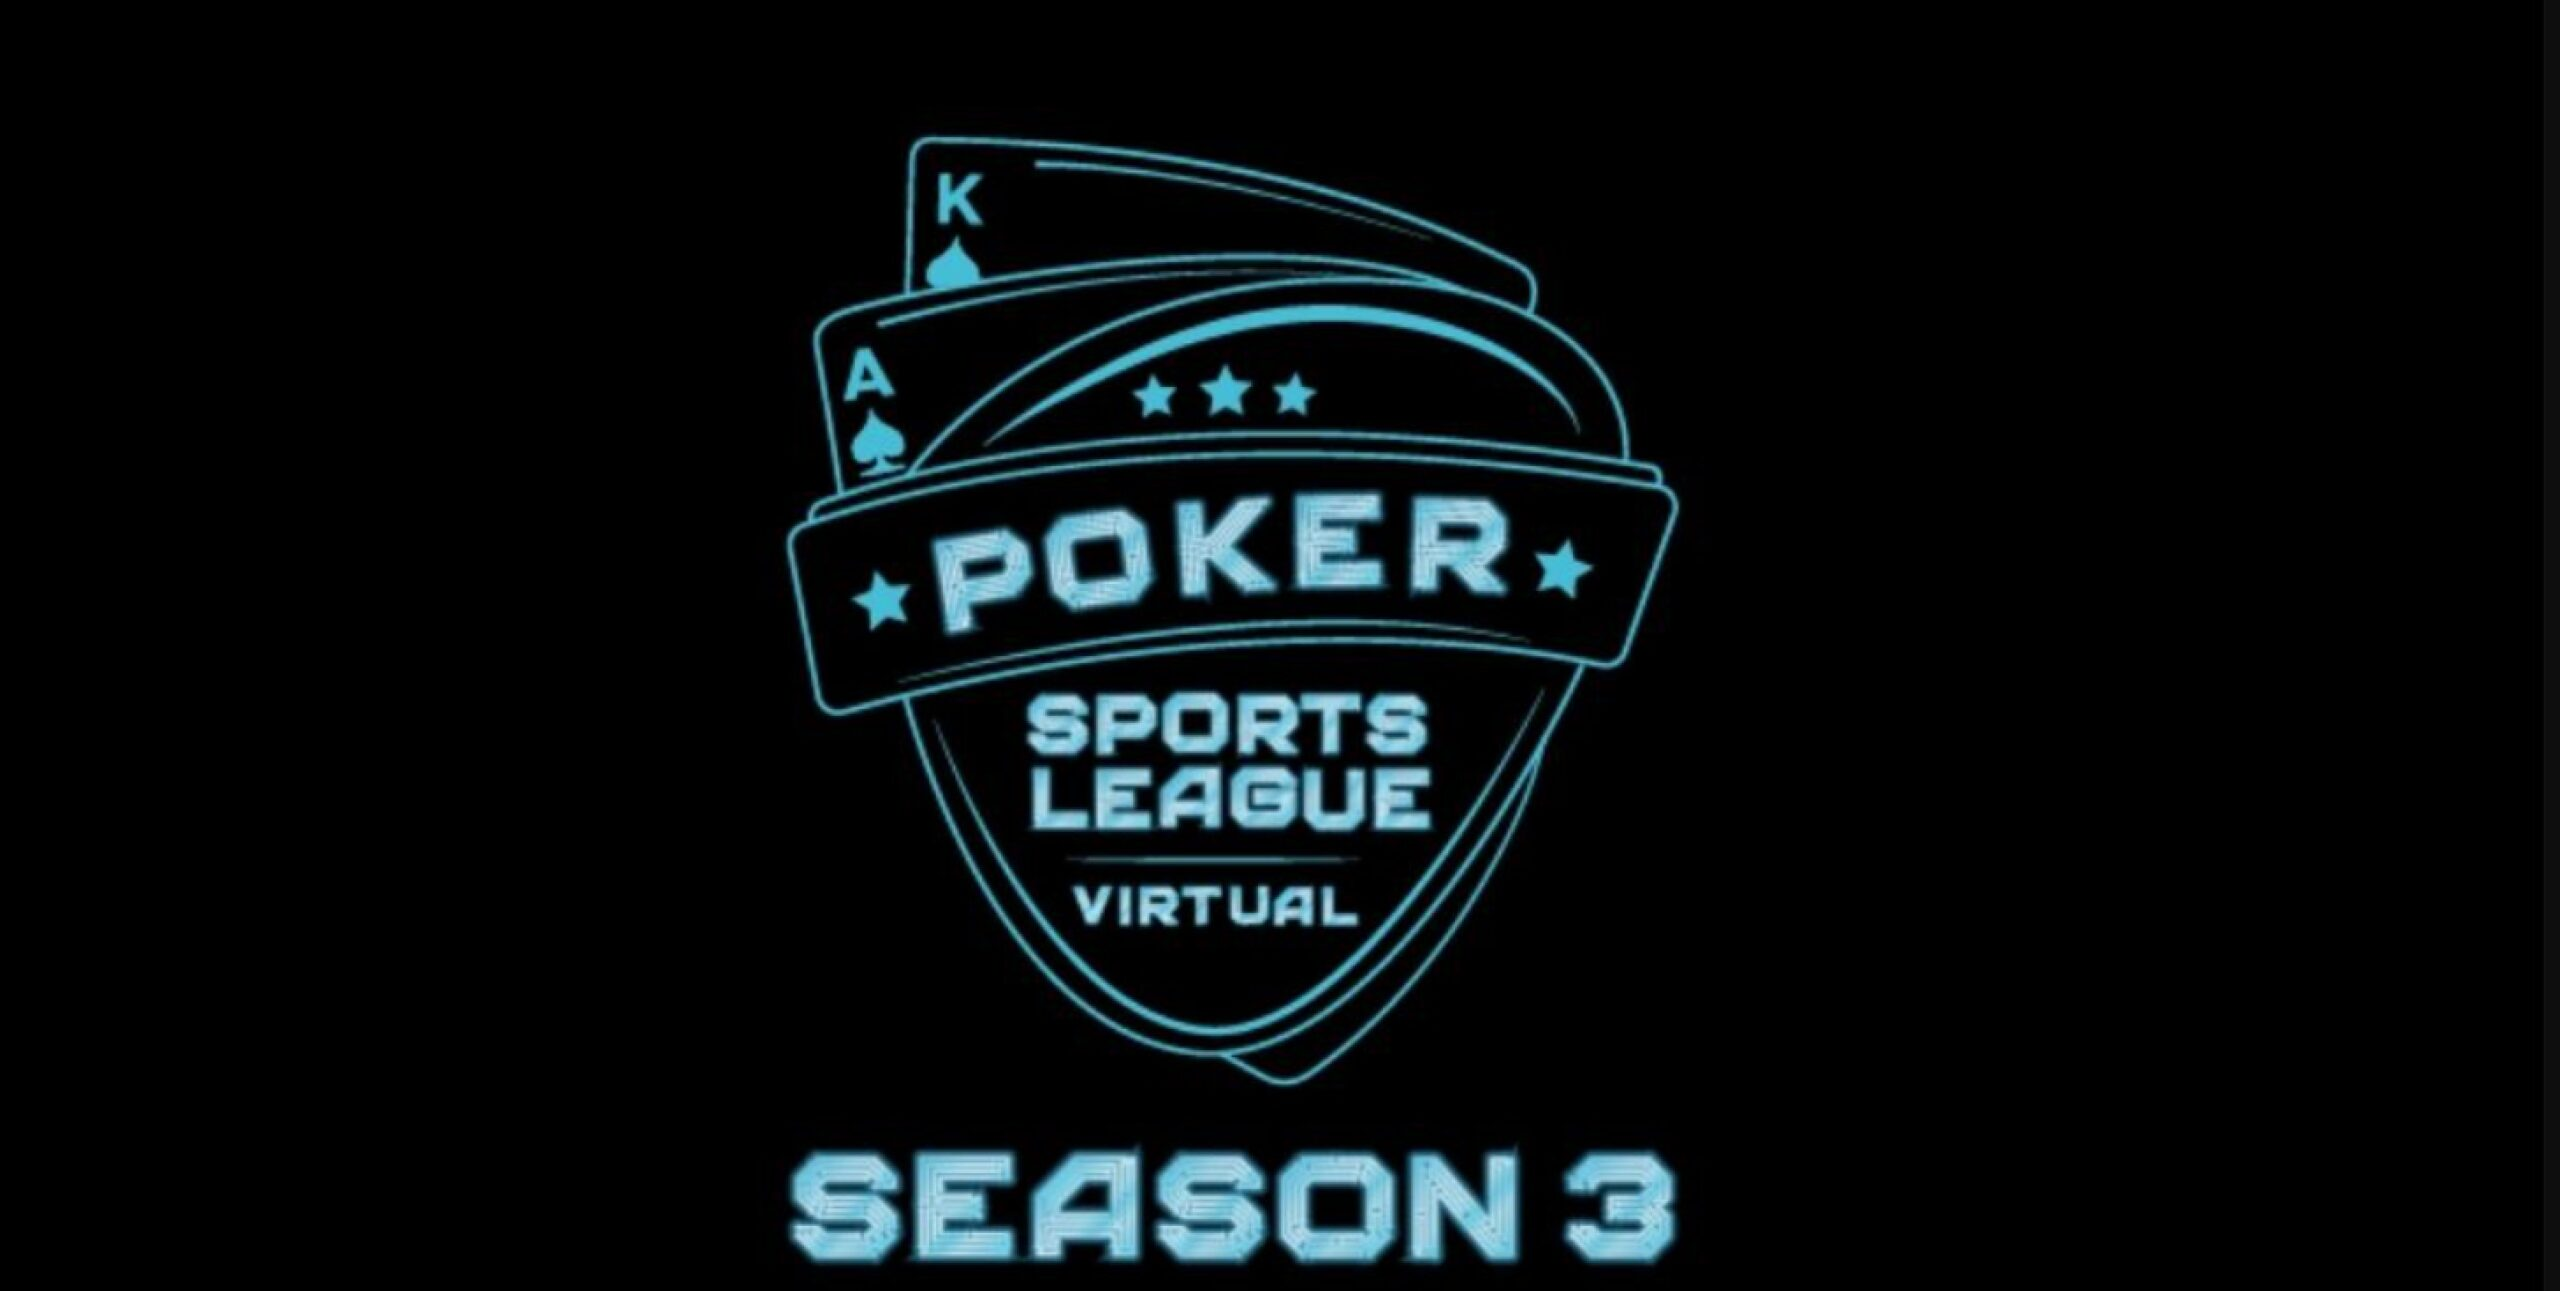 Poker Sports League 3rd Season is going virtual